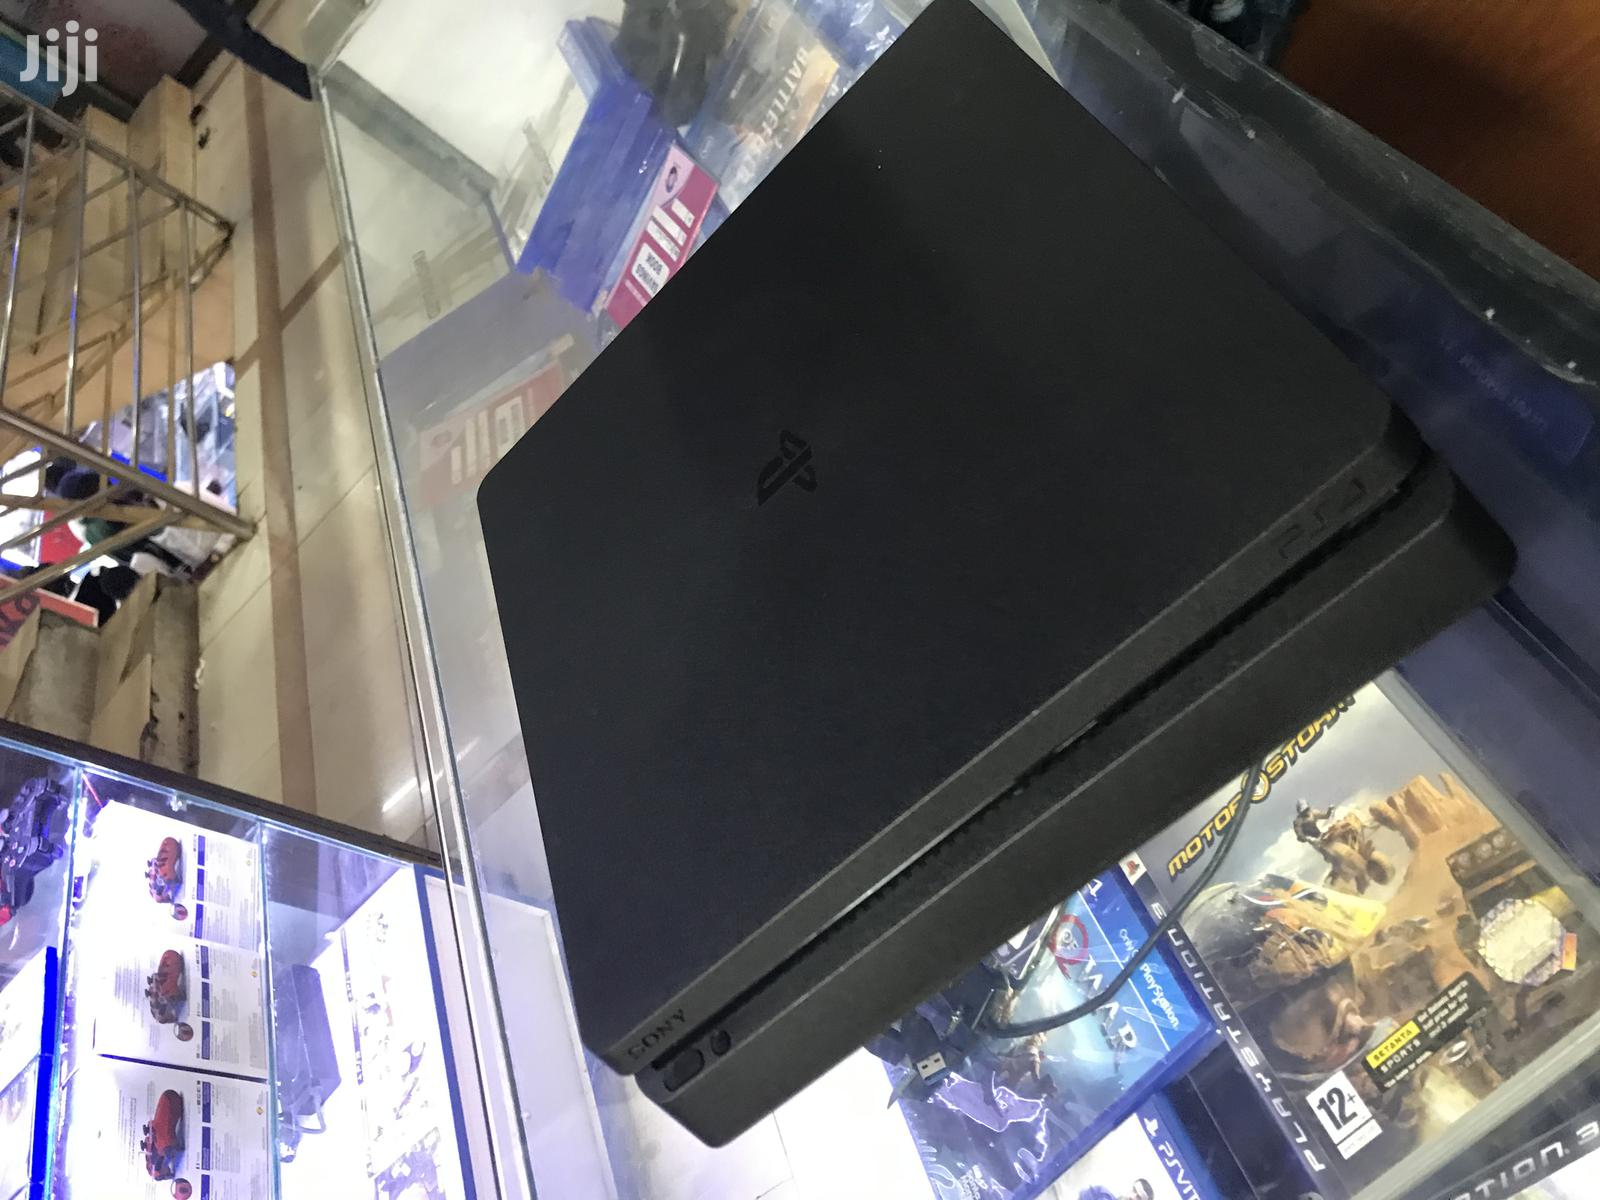 Ps4 Slim Game Console | Video Game Consoles for sale in Kampala, Central Region, Uganda